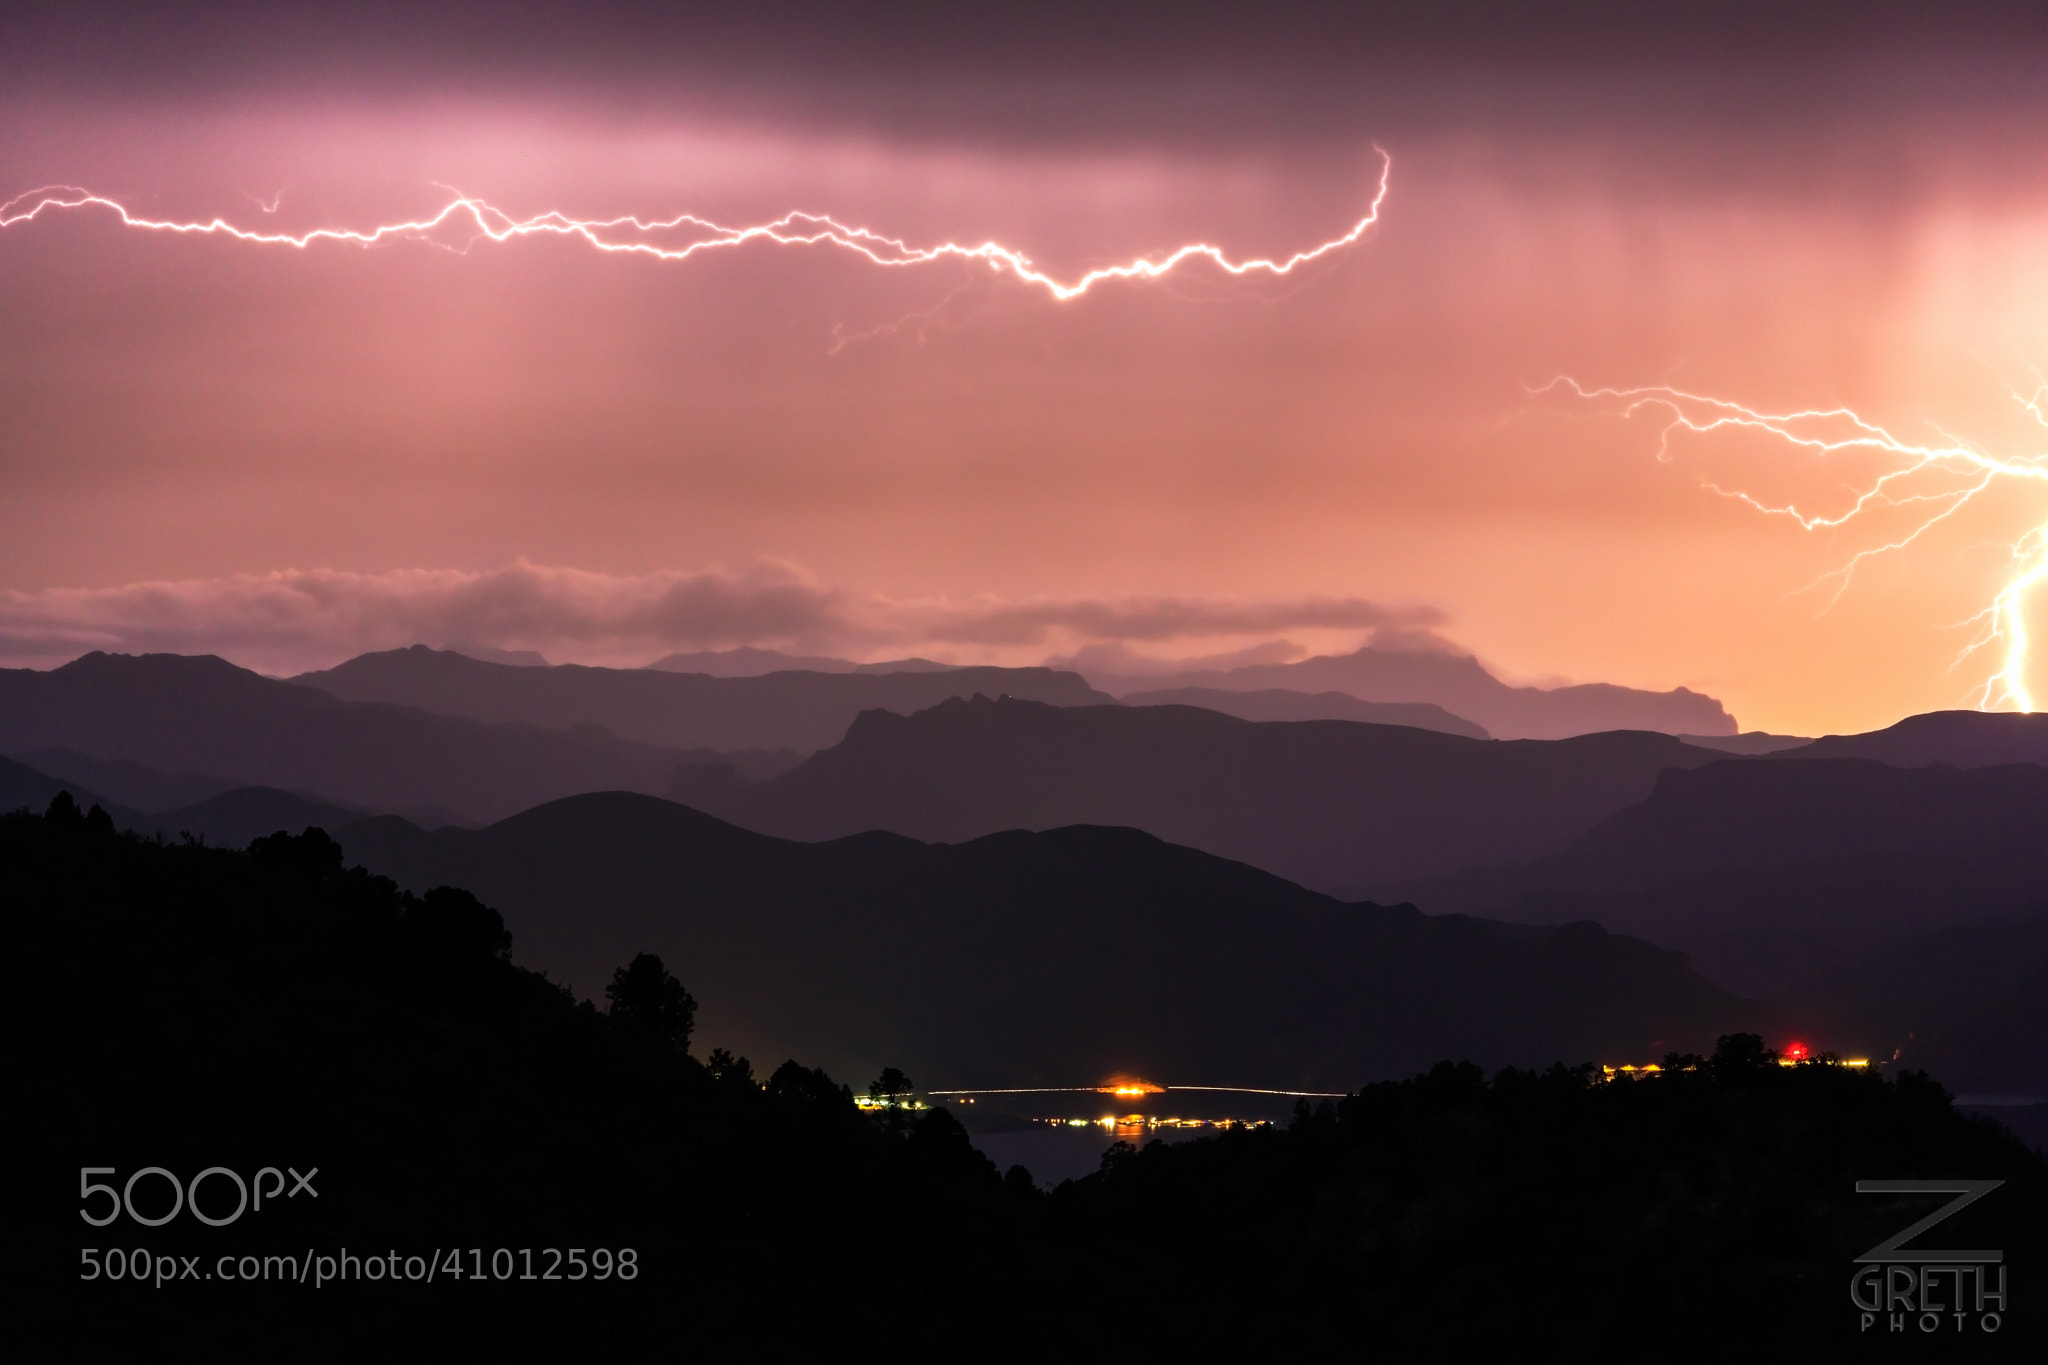 Photograph Roosevelt Lake Lightning by Zach Grether on 500px